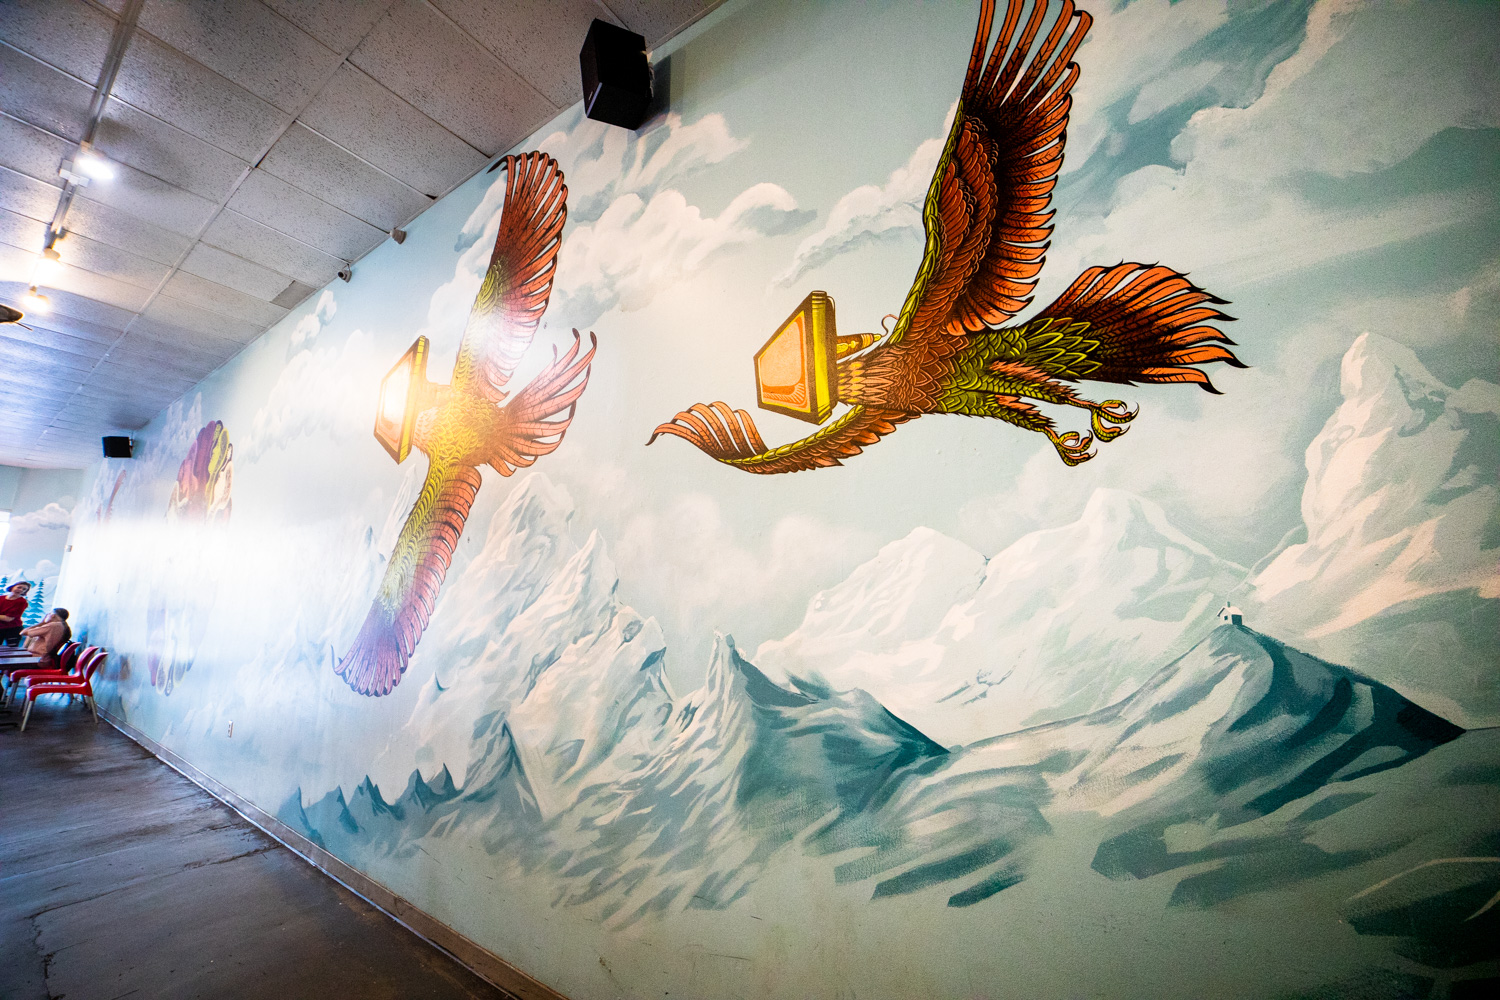 Eagle mutants flying over mountains. (It would be helpful to find out if this mural has a title.)